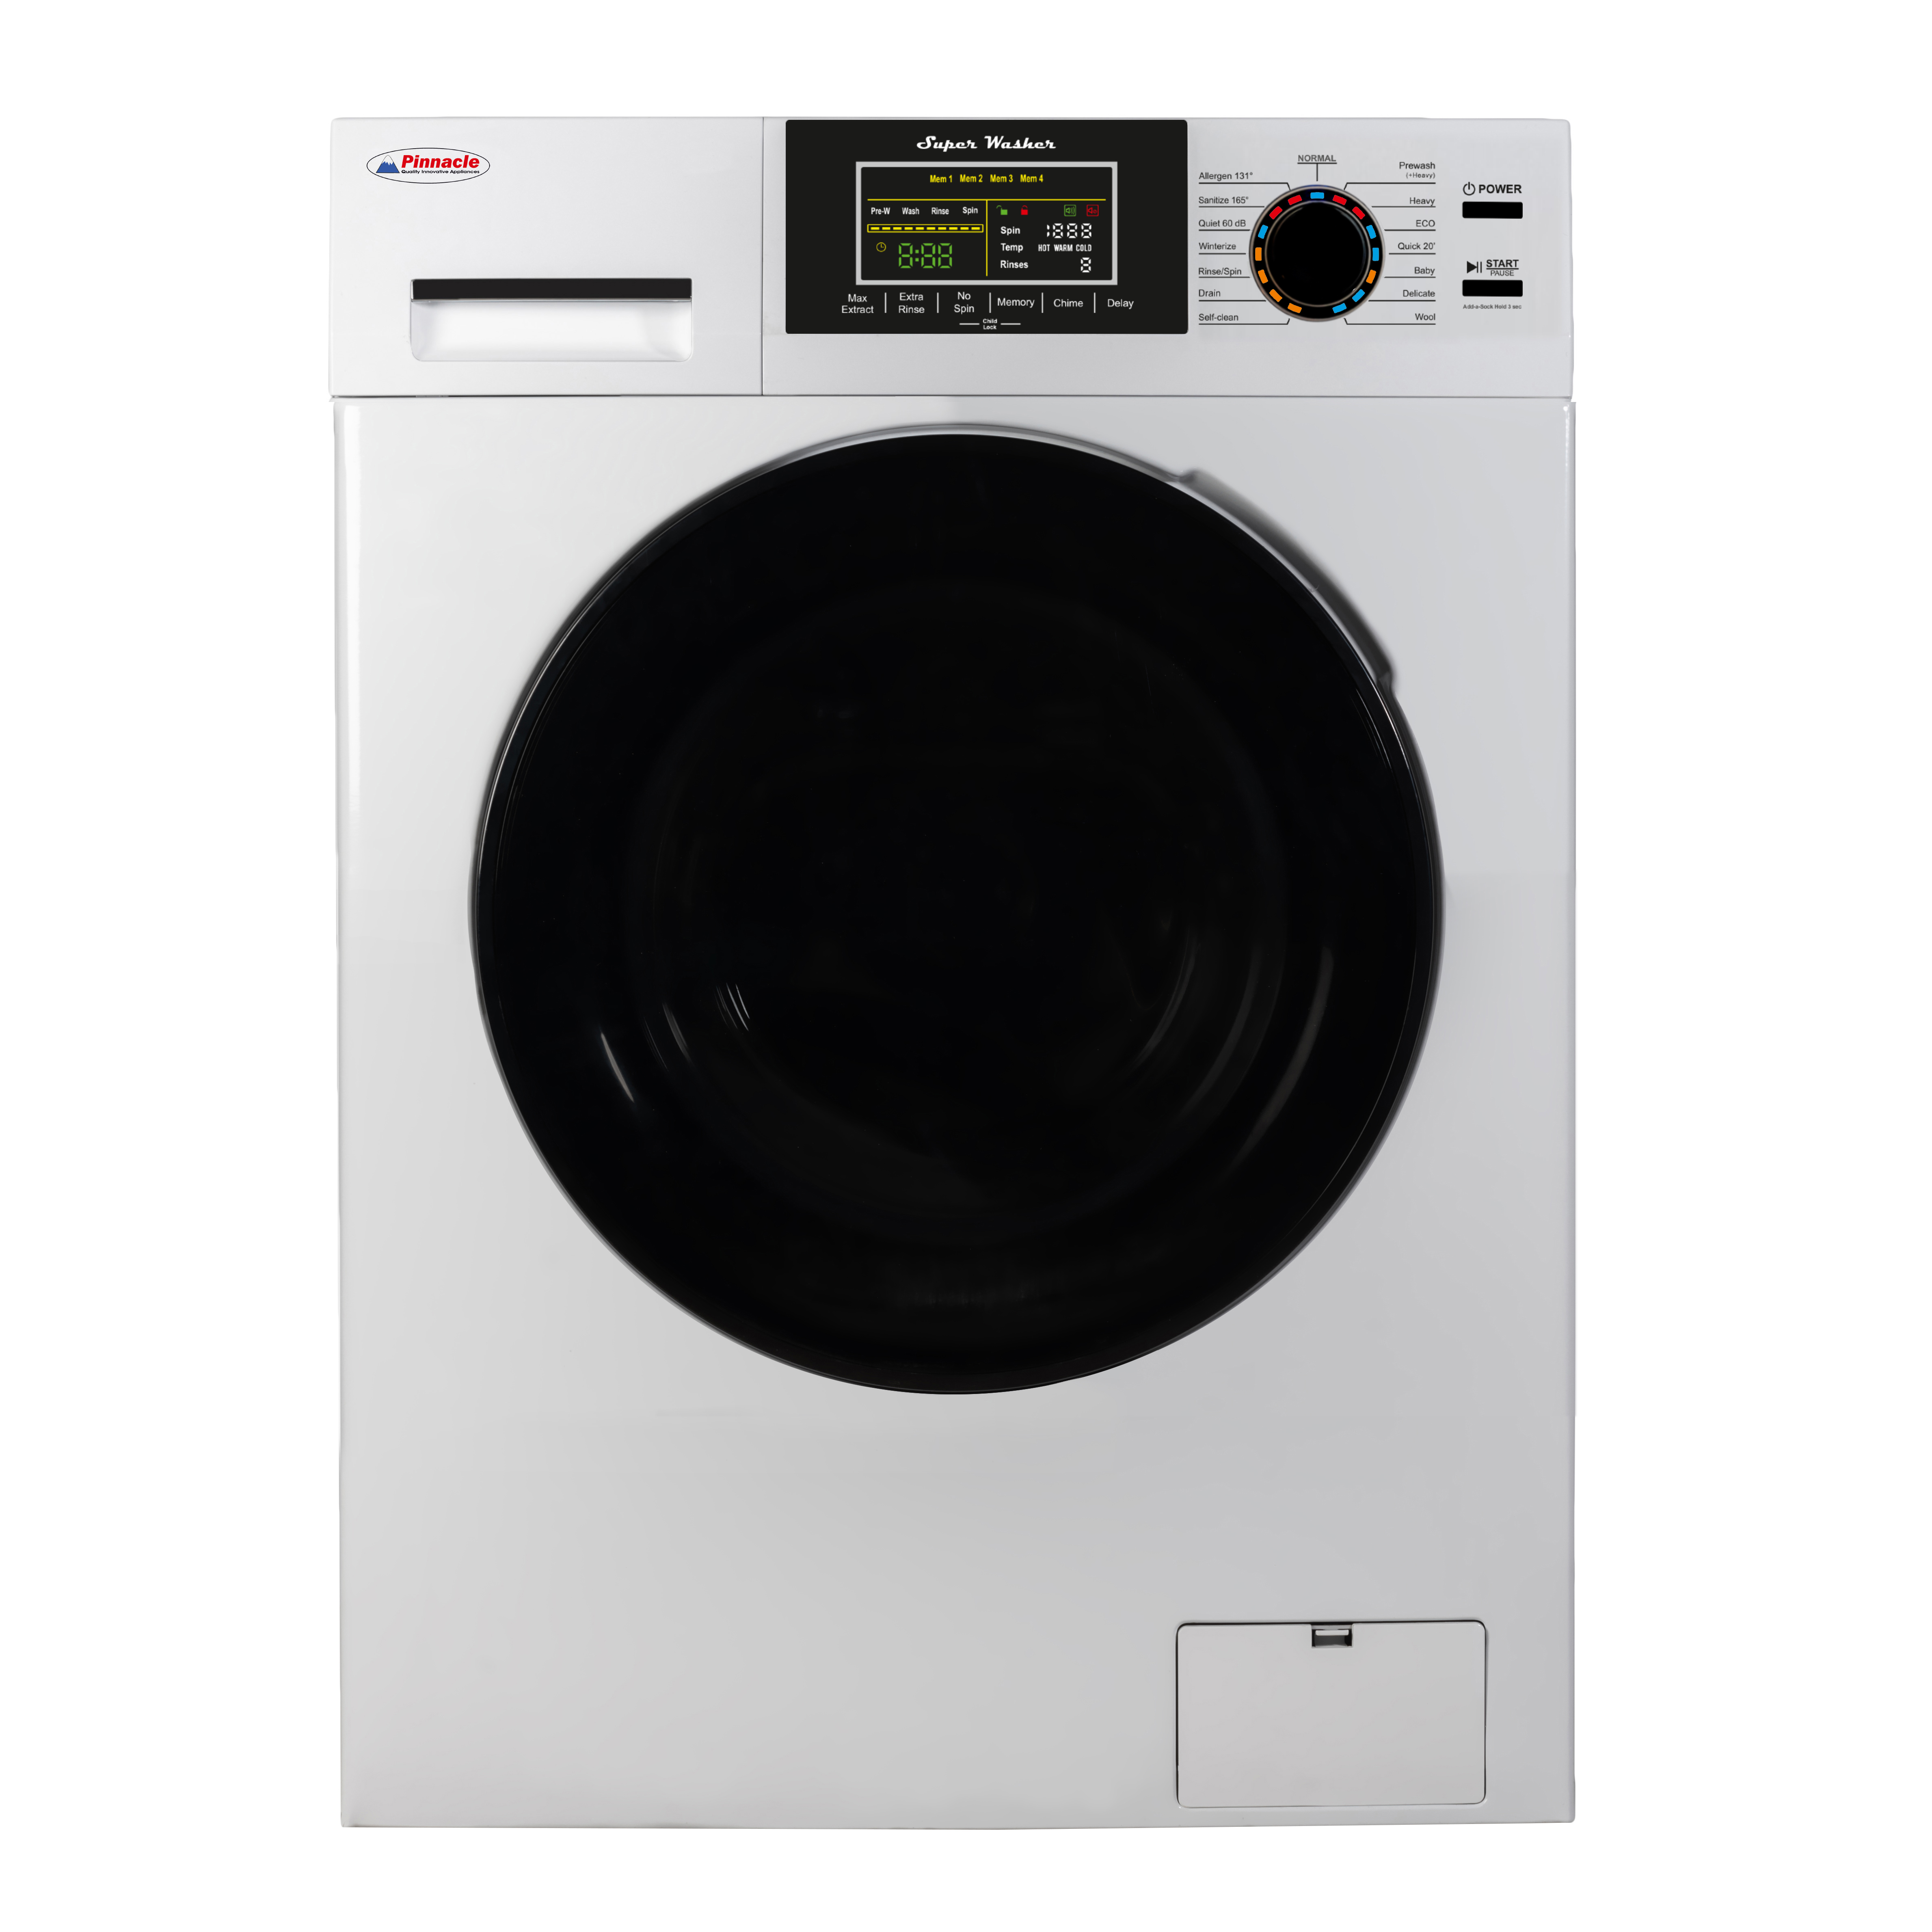 Pinnacle 18 lbs Washer with Sanitize, Allergen and Winterize Features